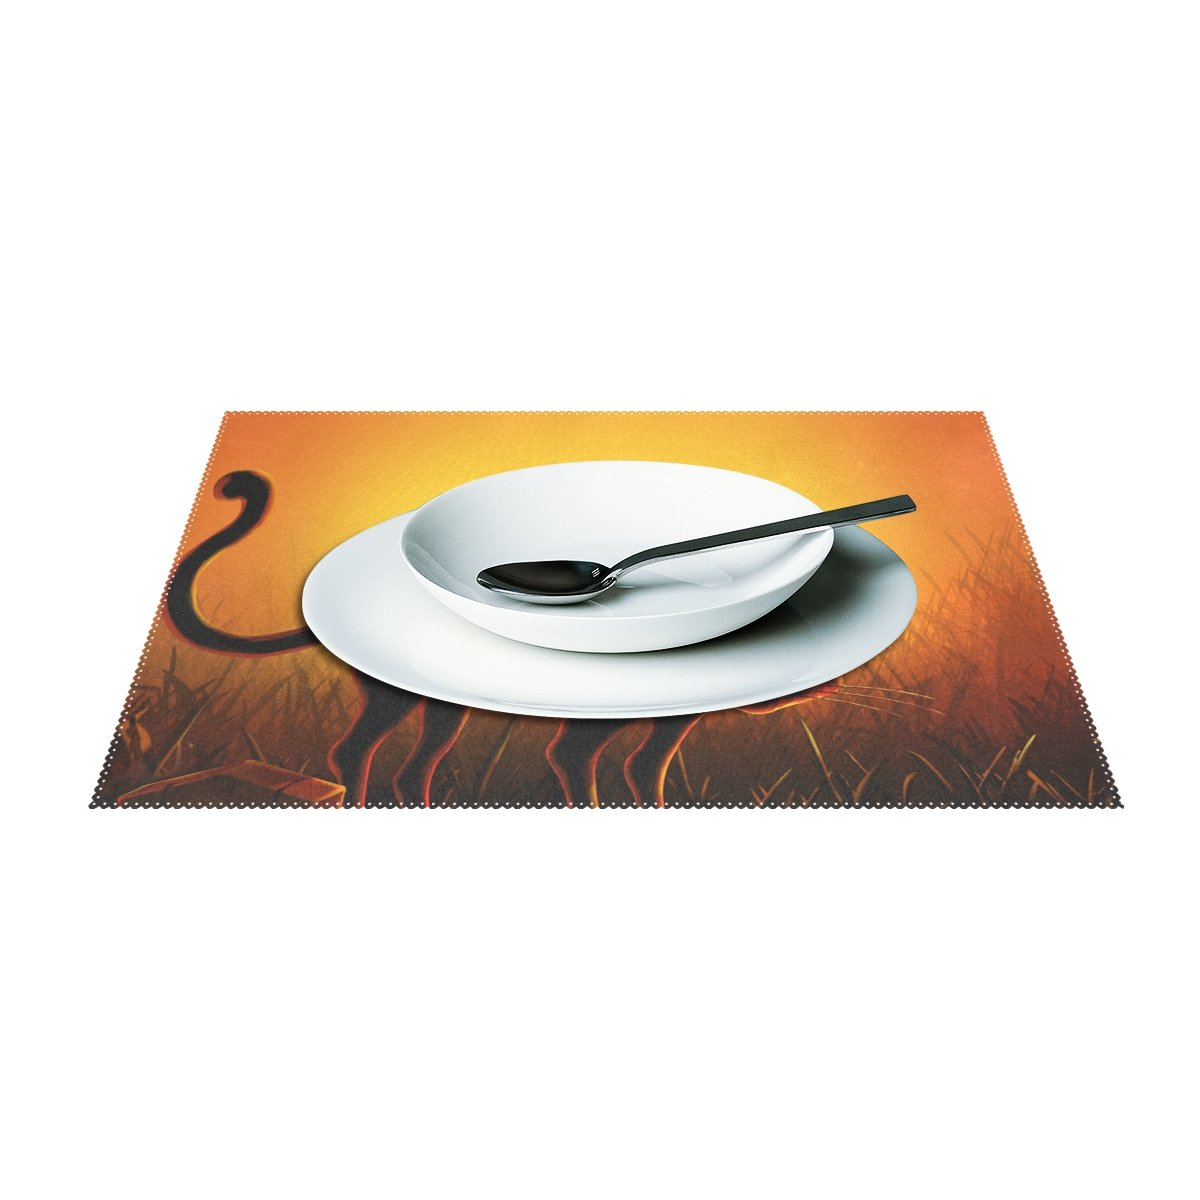 Halloween Black Cat Print Placemats, ALIREA Heat-resistant Placemats Stain Resistant Anti-skid Washable Polyester Table Mats Non Slip Easy Clean Placemats, 12''x18'', Set of 4 by ALIREA (Image #3)